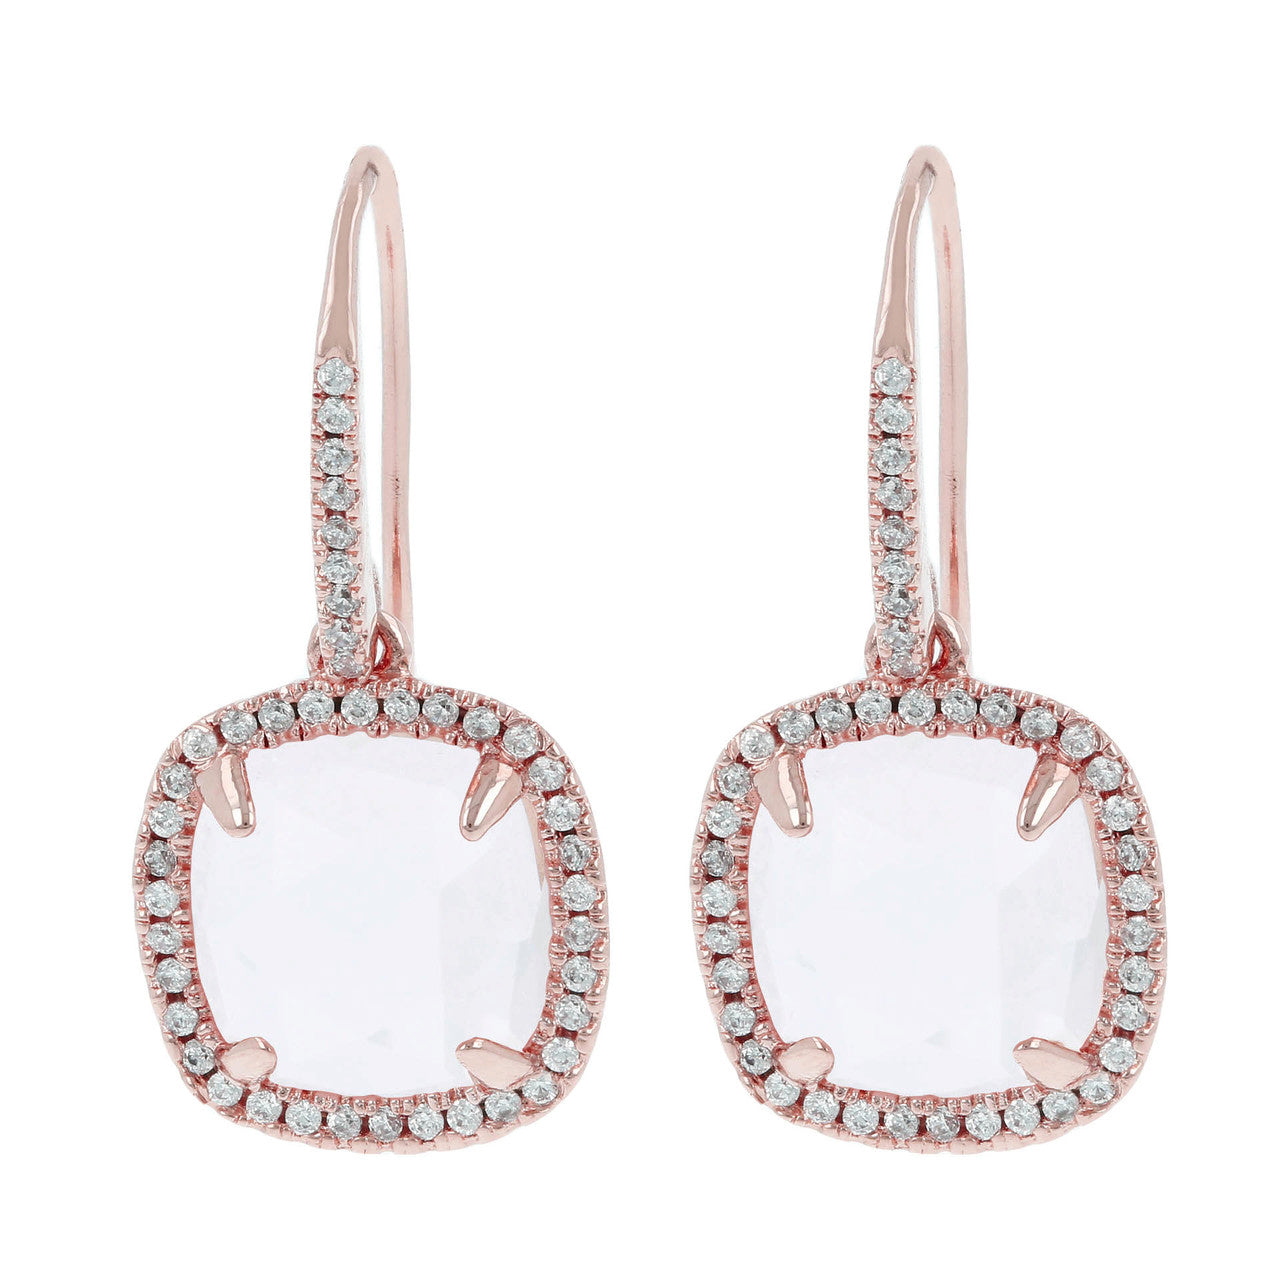 Cubic zirconia stud earrings CRYSTAL QUARTZ